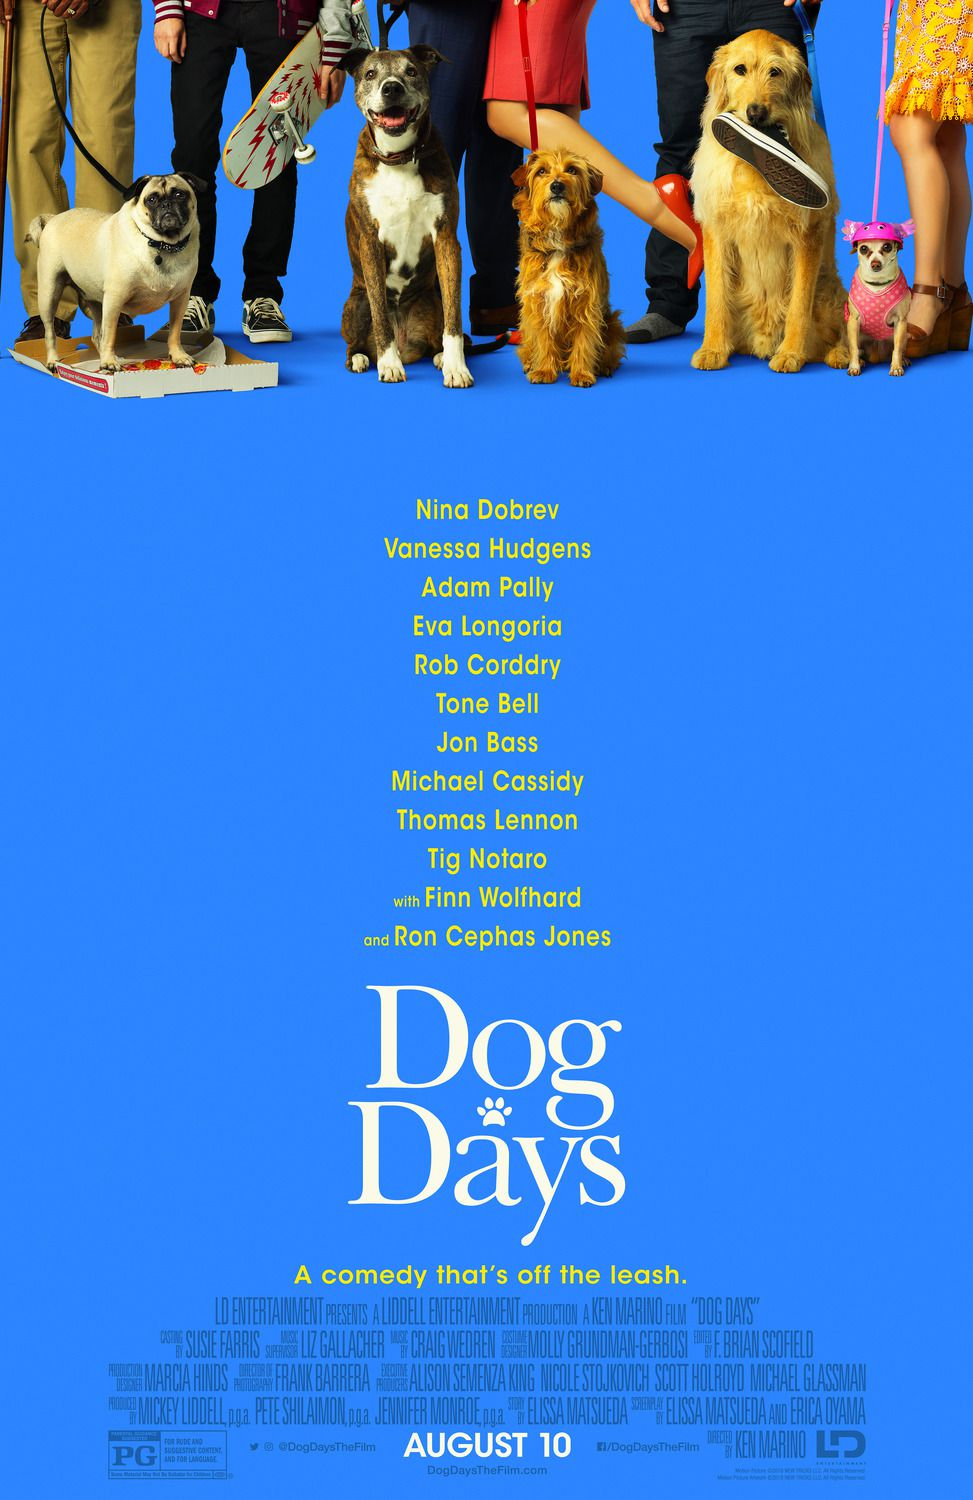 Dog Days 2018 - comedy film poster